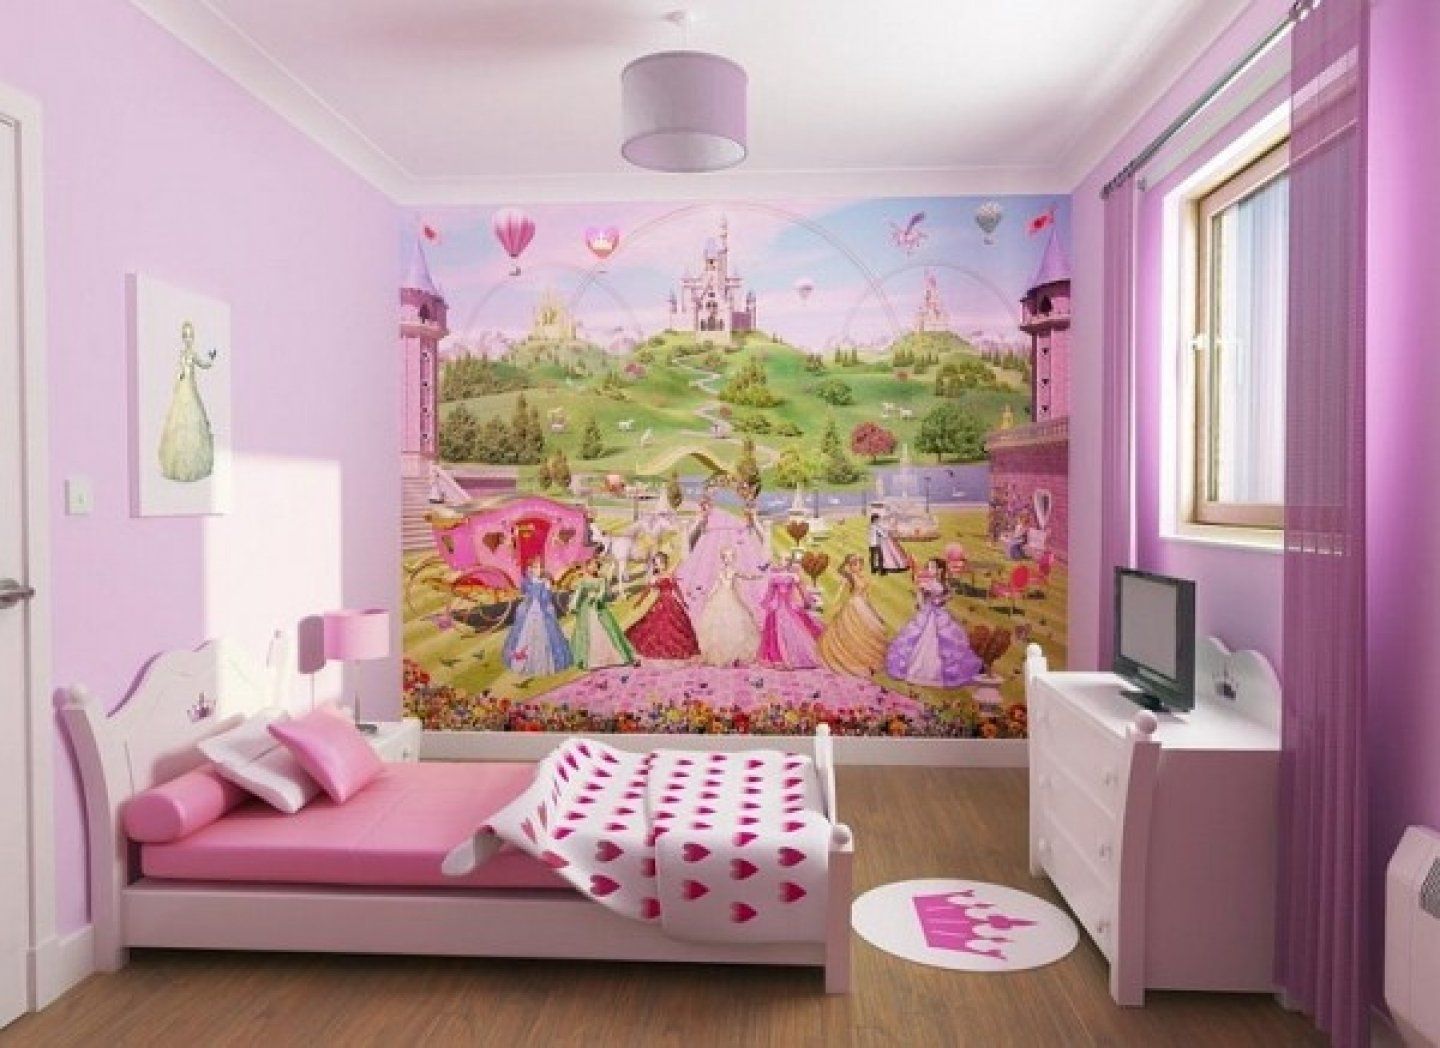 10 Great Room Decorating Ideas For Girls bedroom enchanting girls rooms decorating ideas girls wall decor 2020